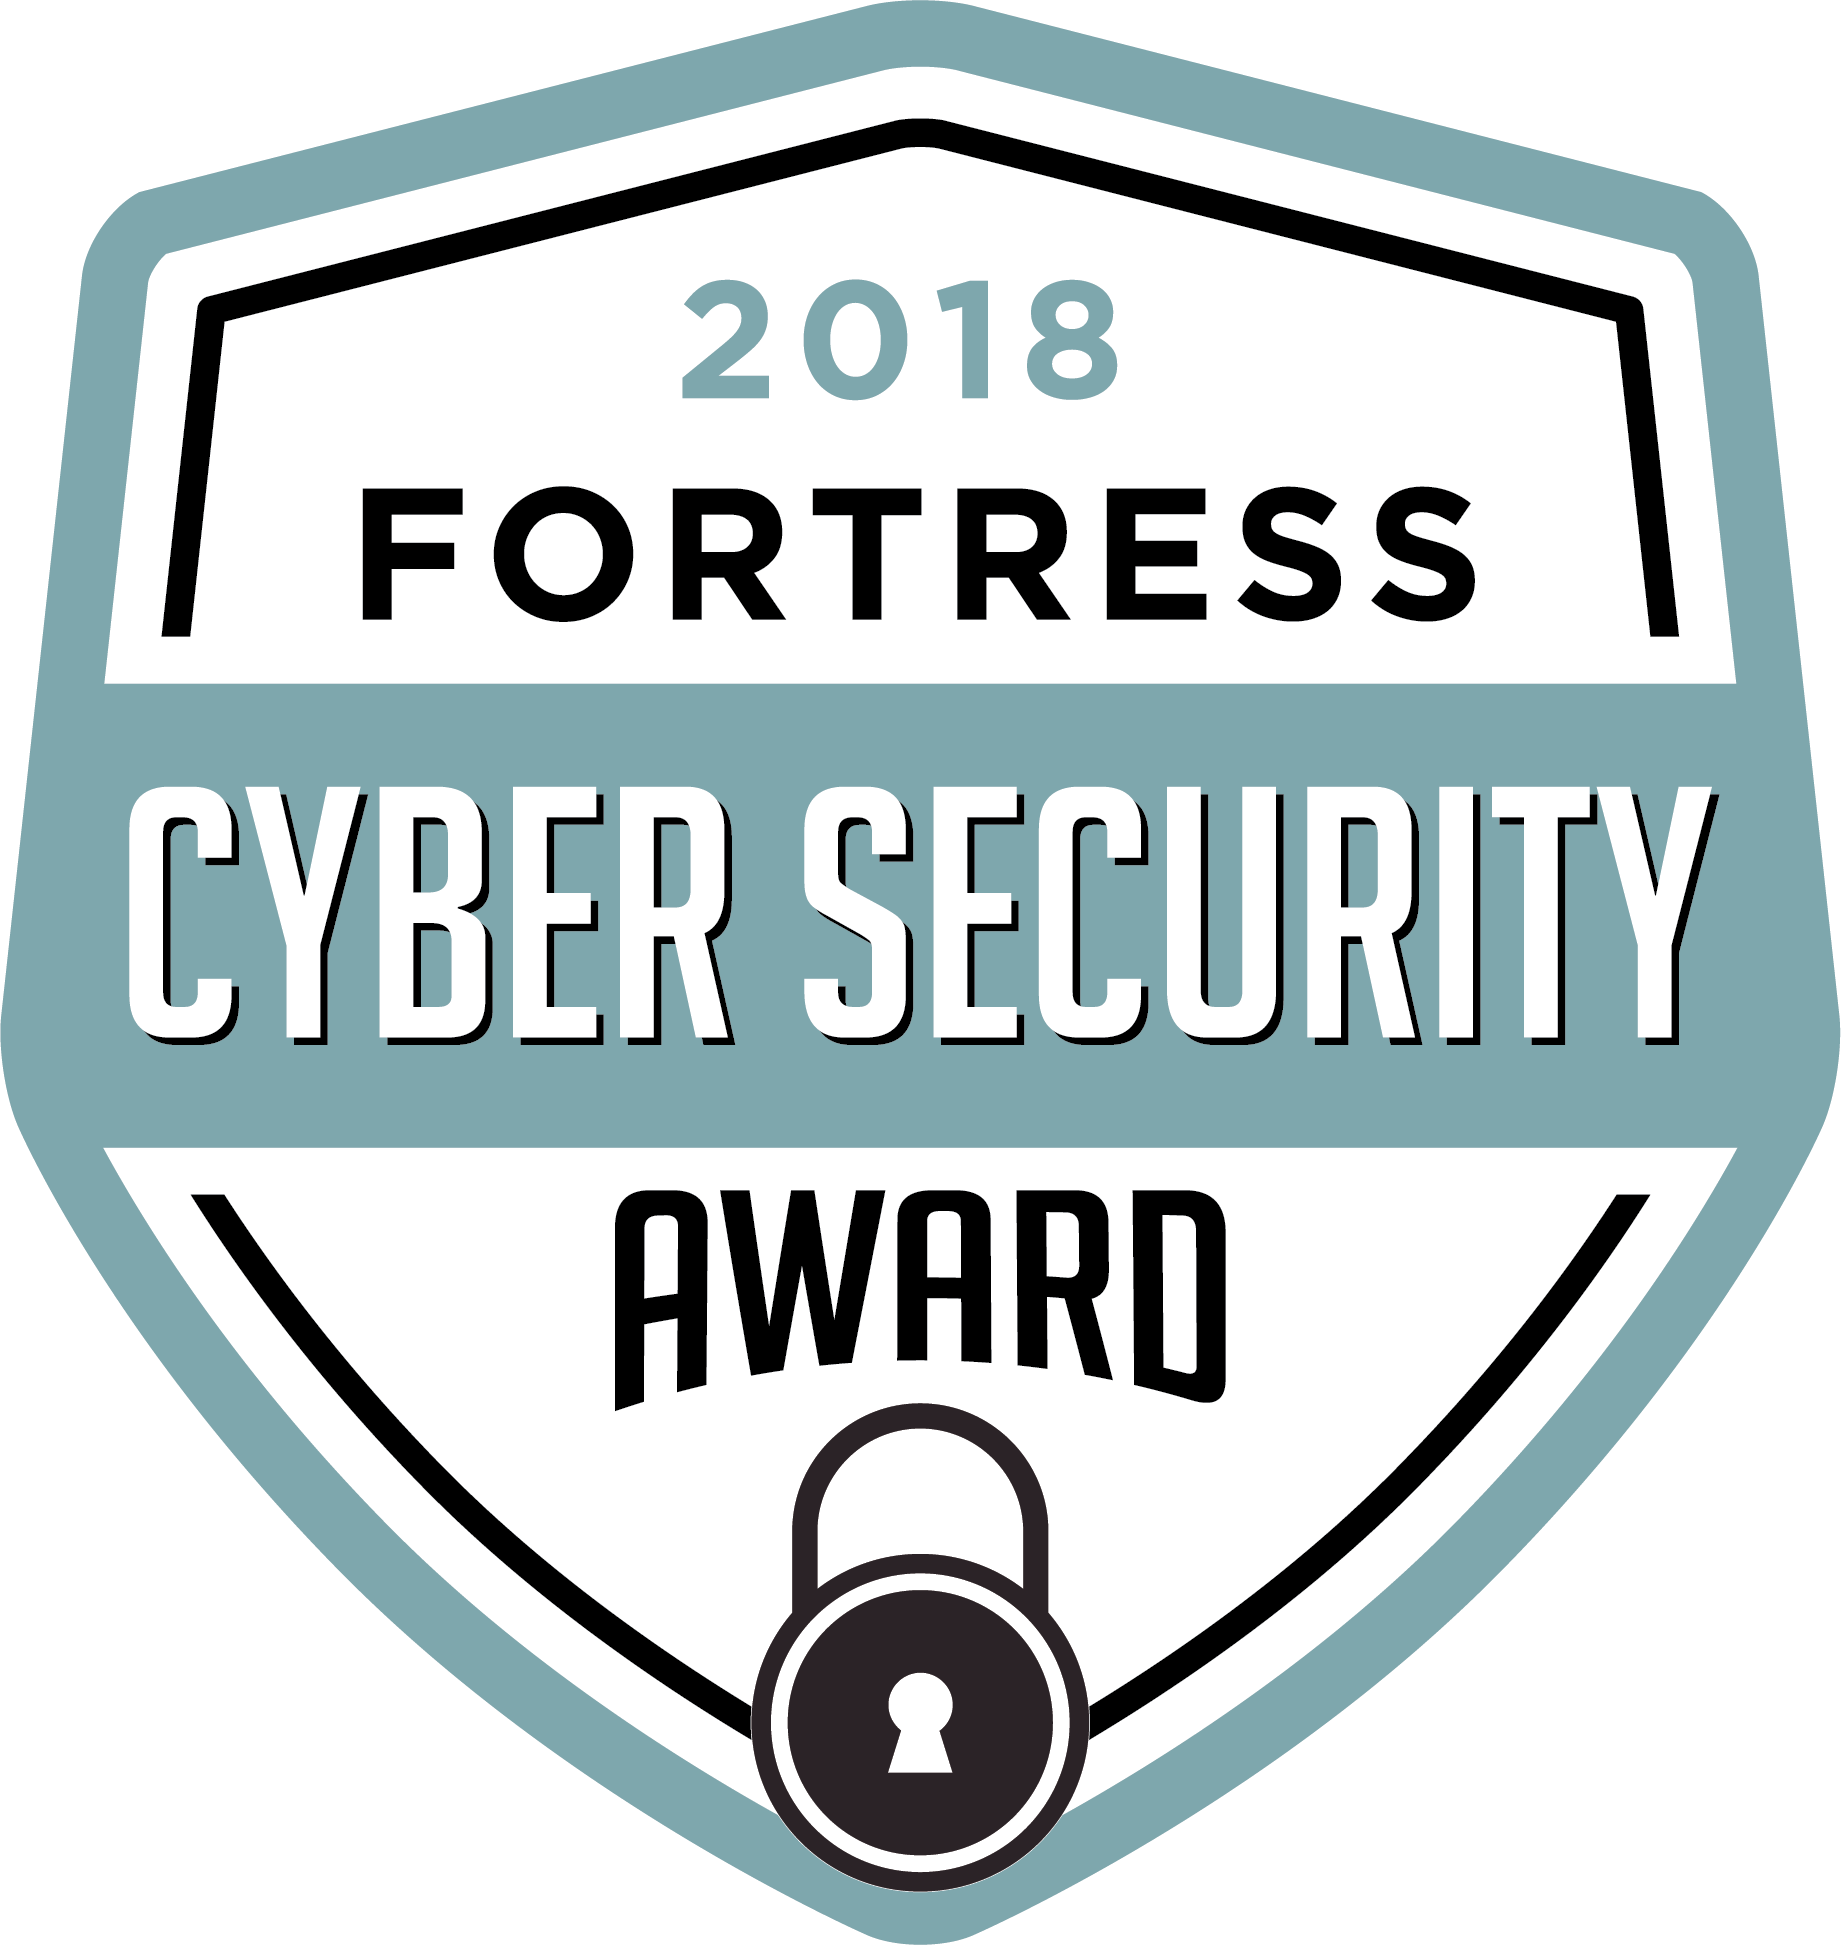 CyberSecurityAward-2018